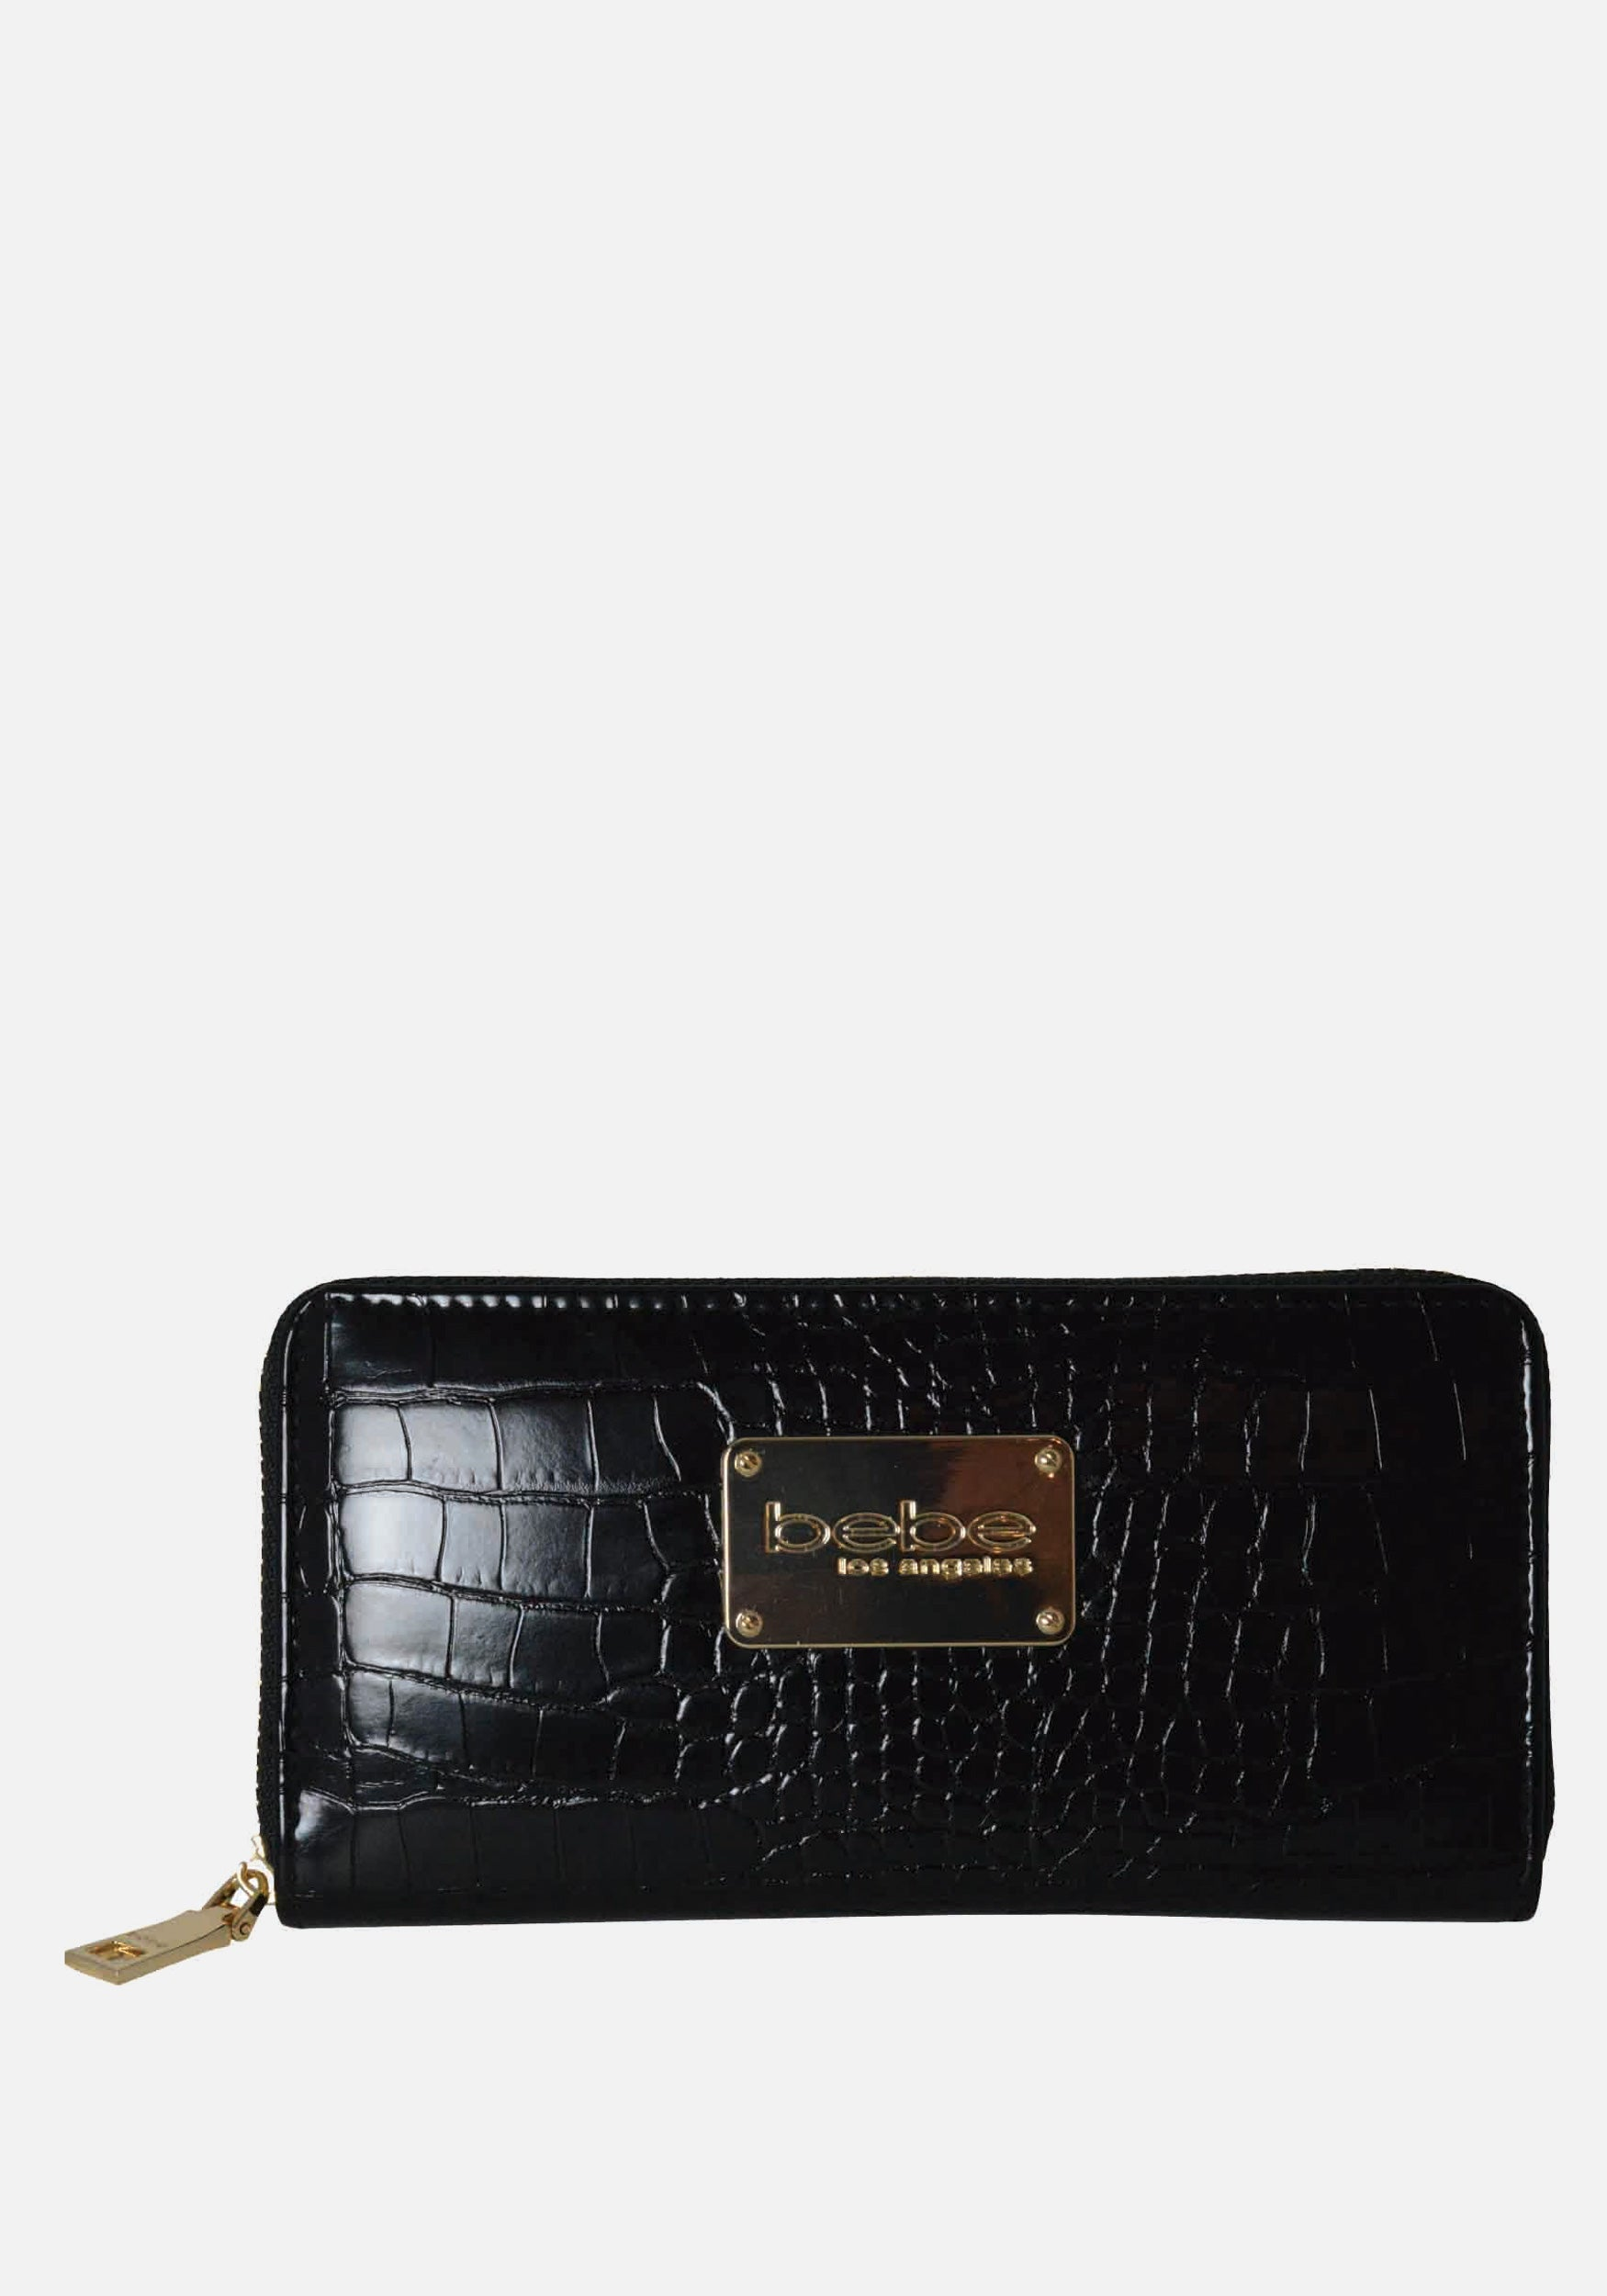 Bebe Women's Natalia Croco Wallet in Black Polyester